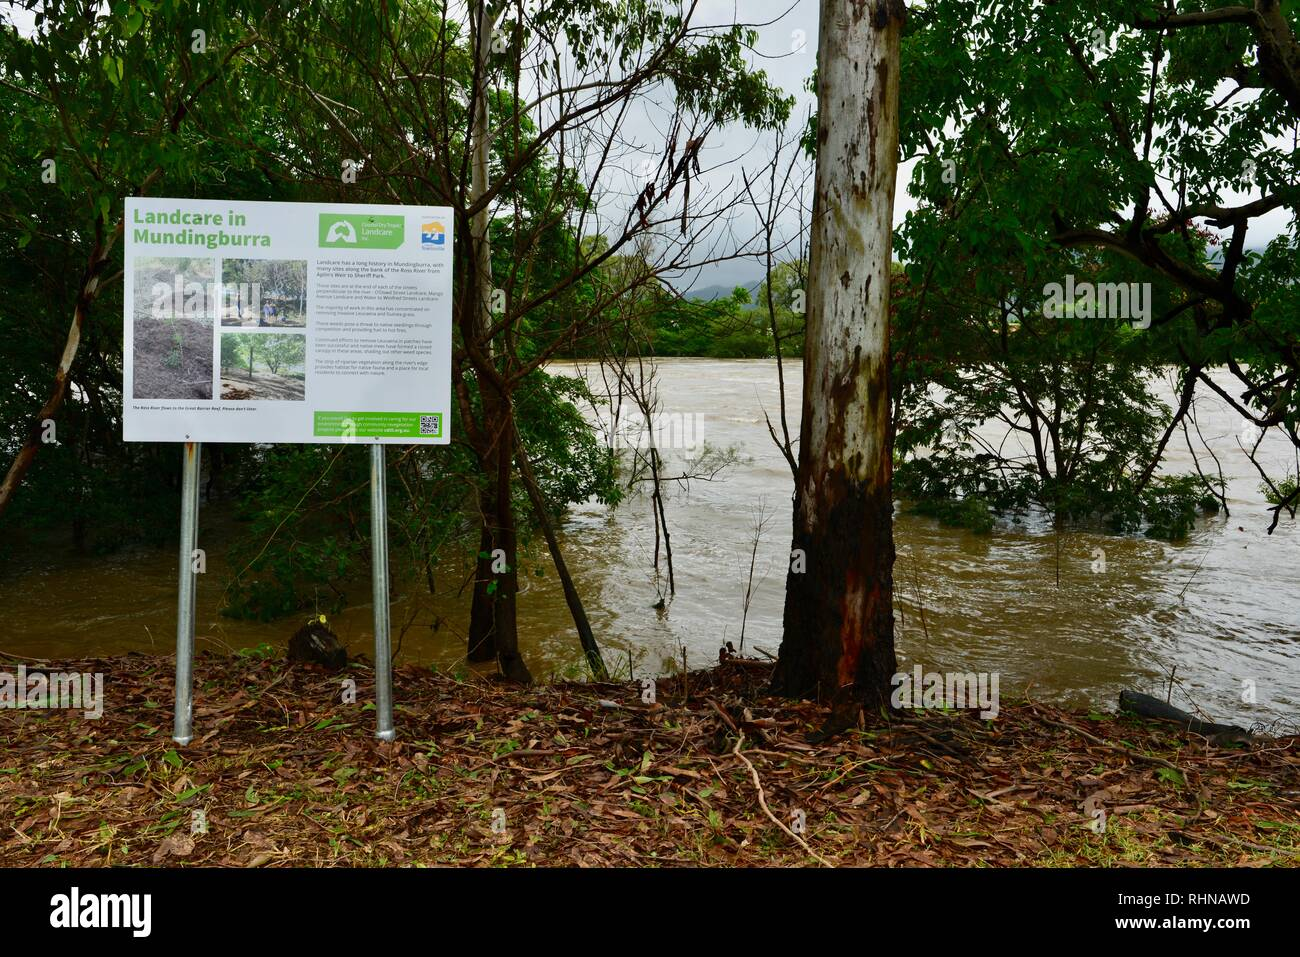 Landcare in Mundingburra sign, Queensland, Australia. 3 February 2019. Flooding continued to worsen as the deluge continued and more water was released from the bulging Ross River dam to prevent the failure of the dam wall. Credit: P&F Photography/Alamy Live News Stock Photo